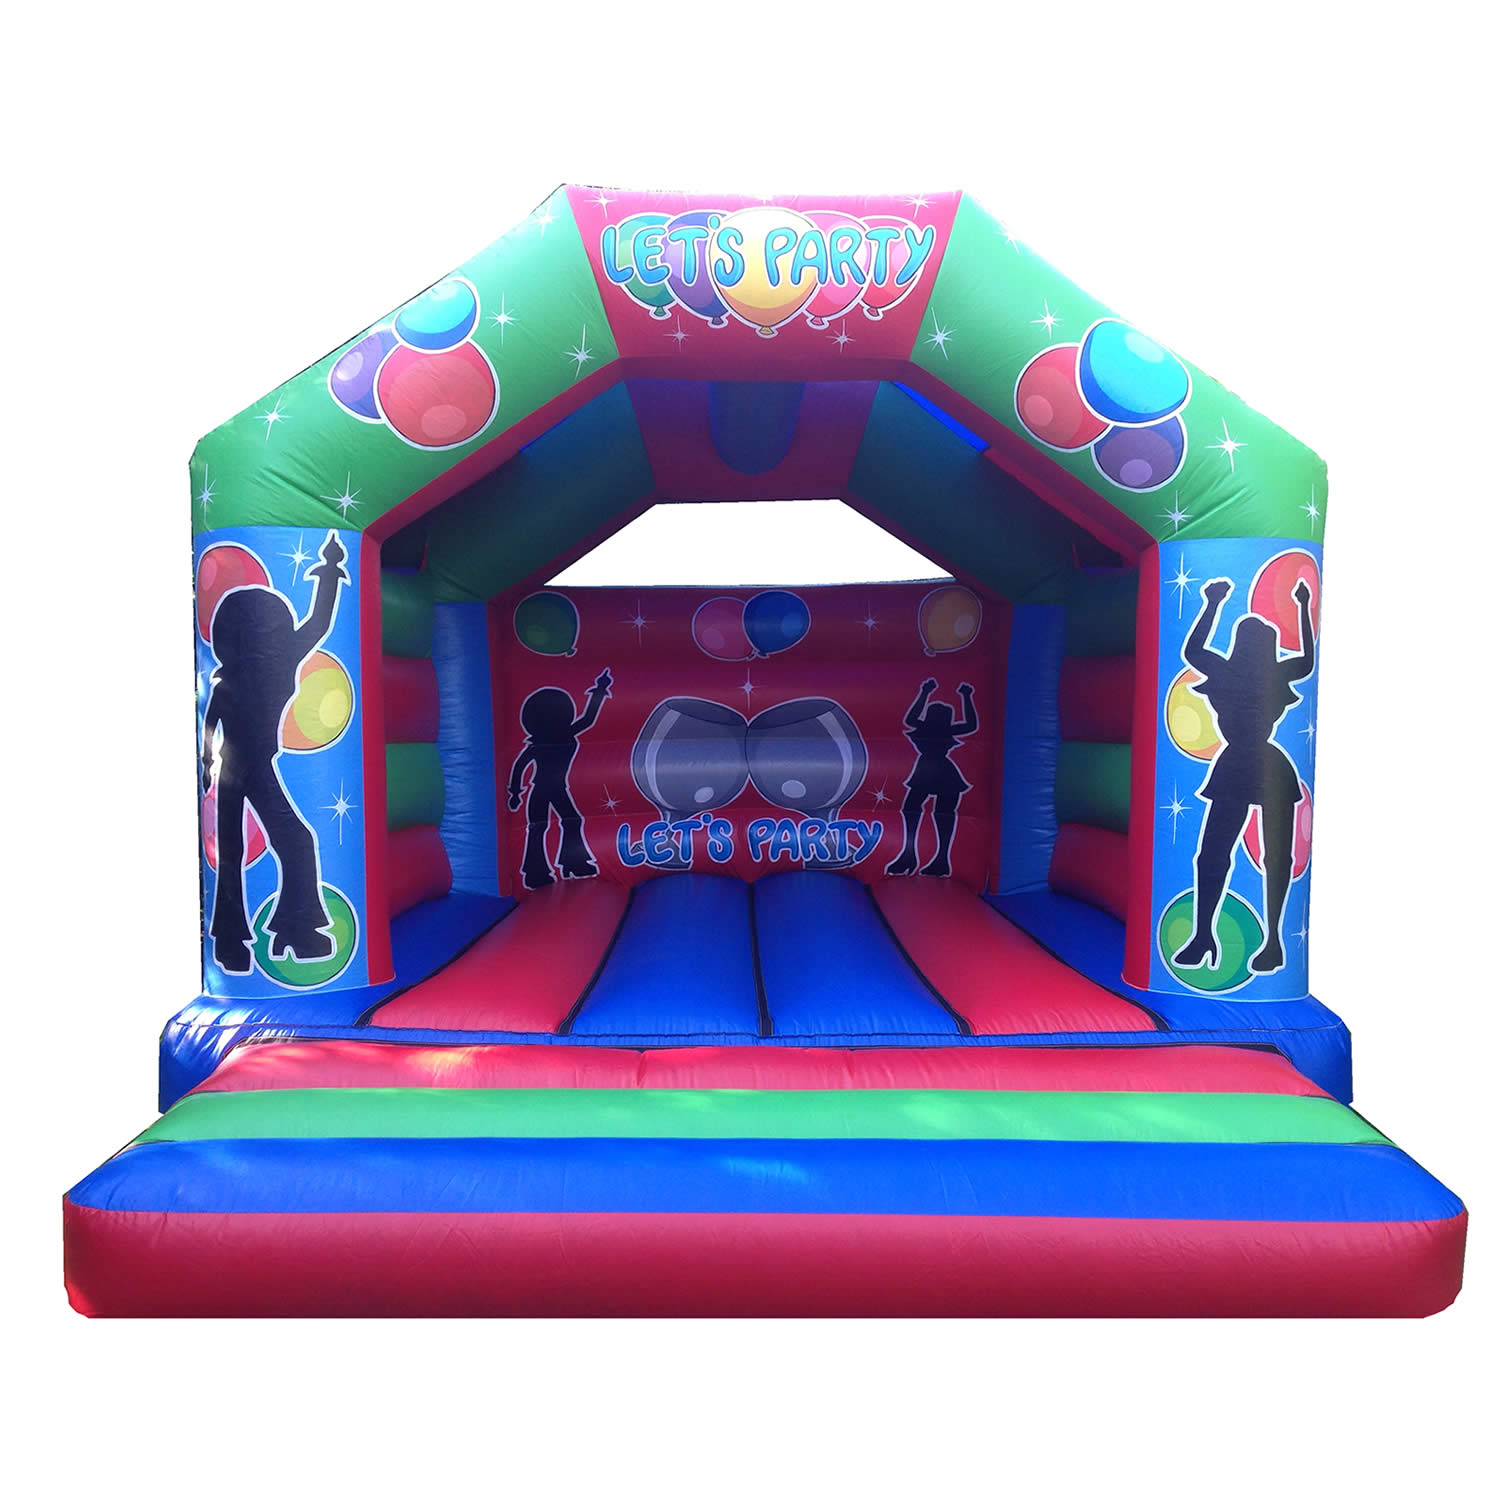 17 x 15 Family Bouncy Castle - Party Time Theme